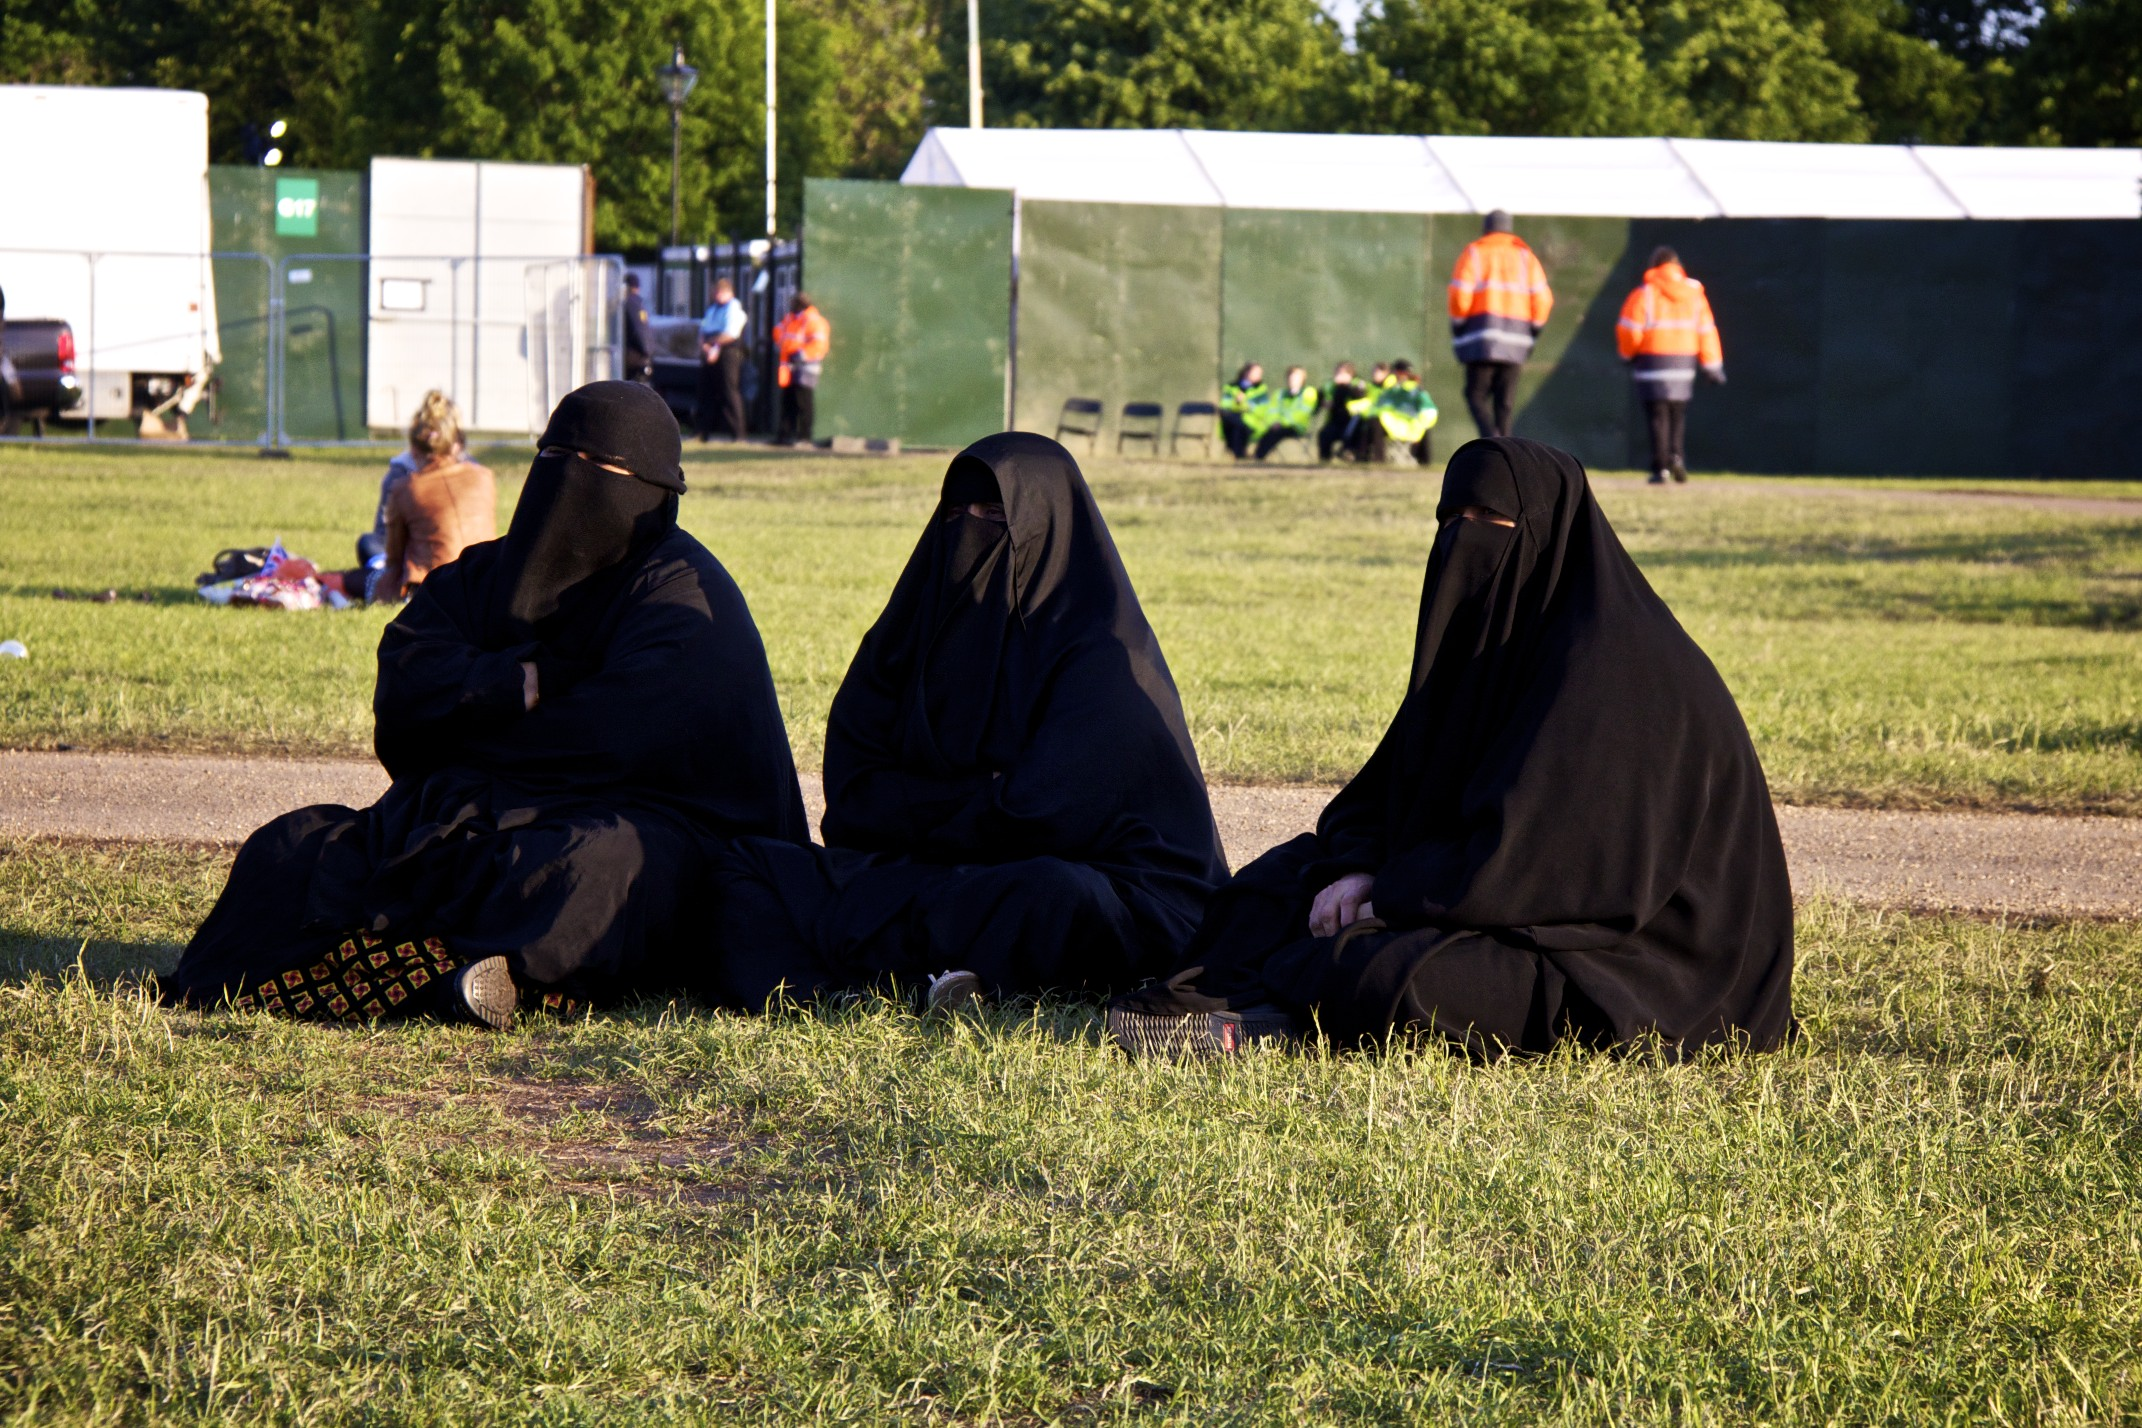 muslim single women in hyde park After claiming that three men tried to pull off her muslim headscarf on a new york city subway train, officials say, yasmin seweid of new hyde park made the whole story up.